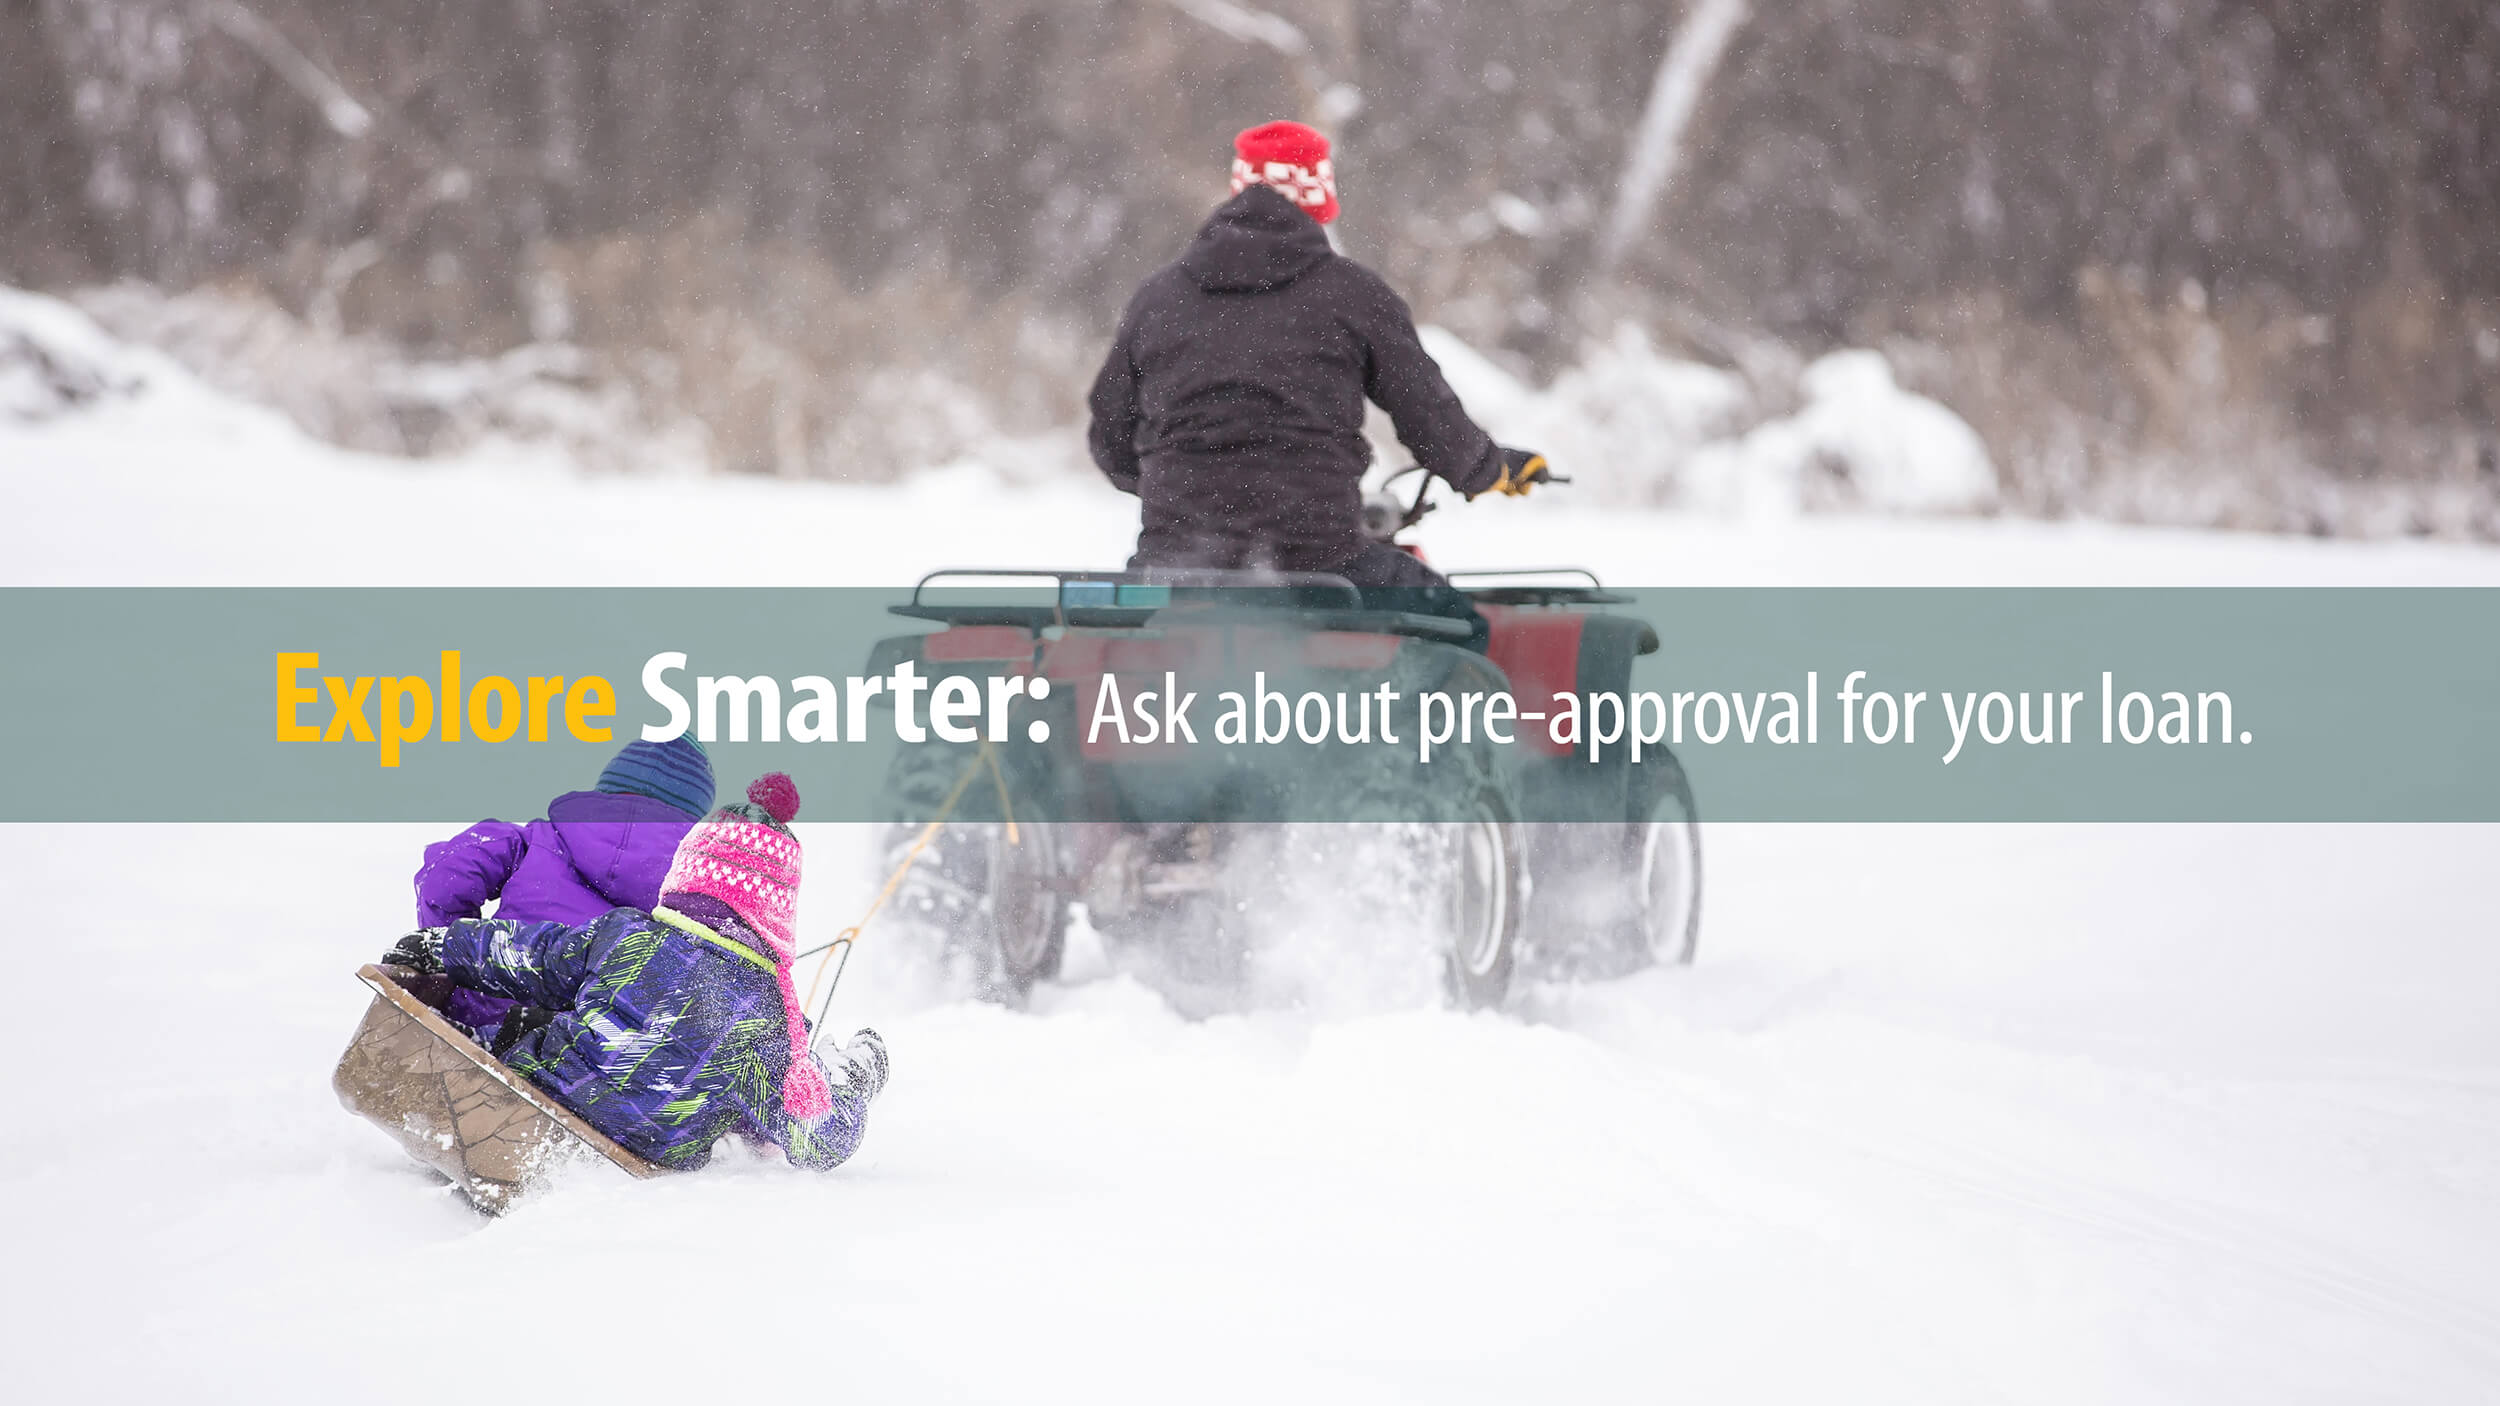 Adult on 4-wheeler purchased with First Source financing tows kids on sled through snow